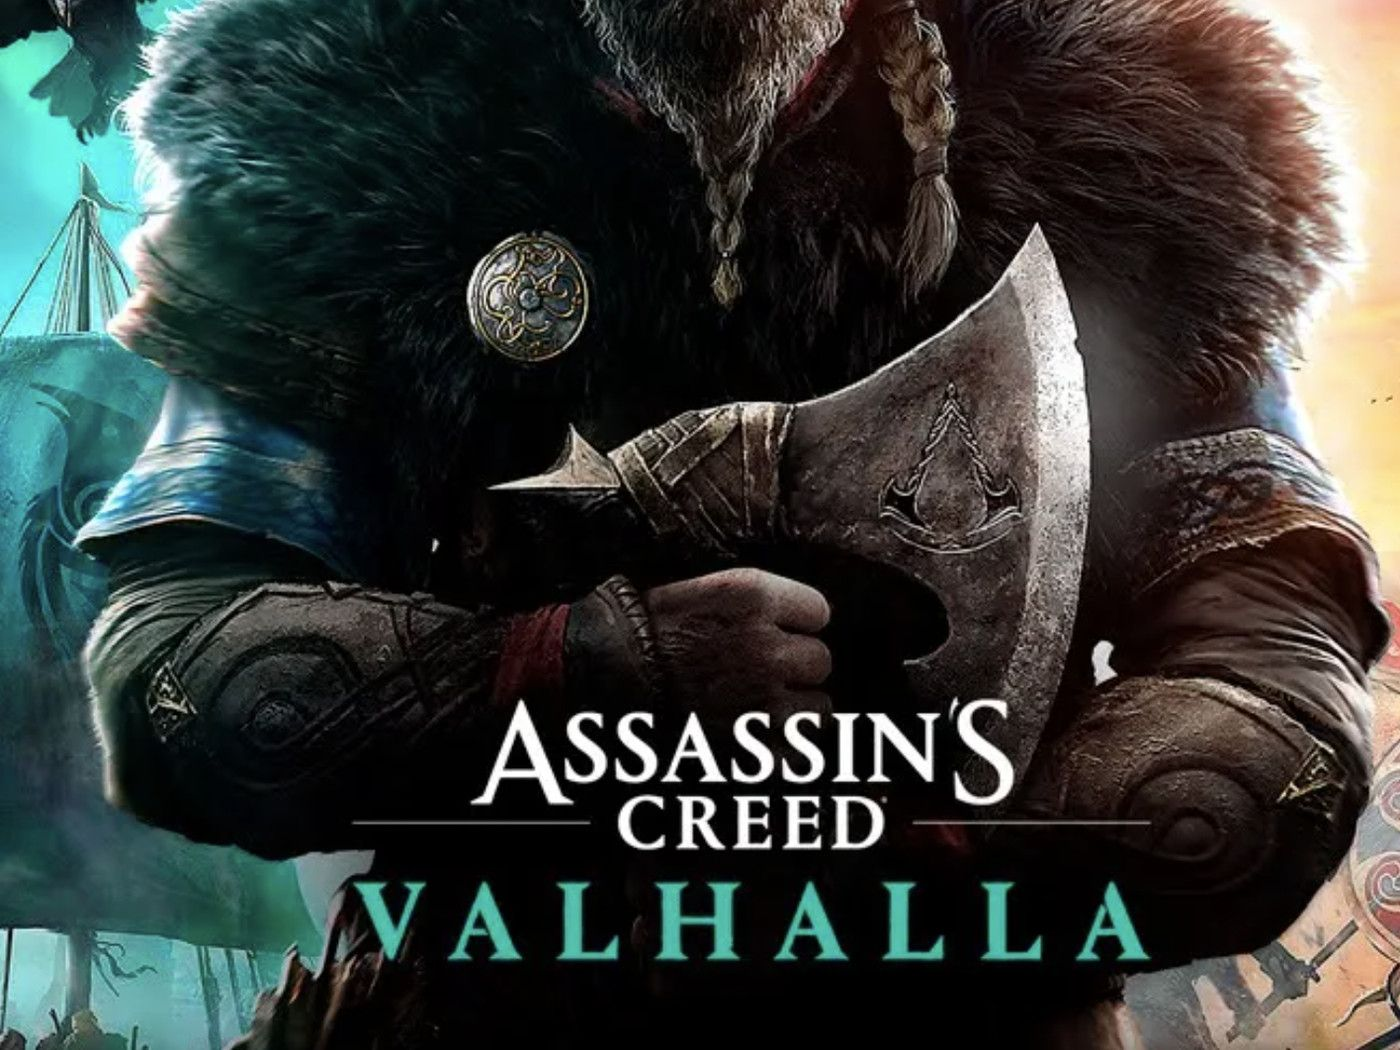 Assassins Creed Valhalla Wallpapers   Top Assassins Creed 1400x1050